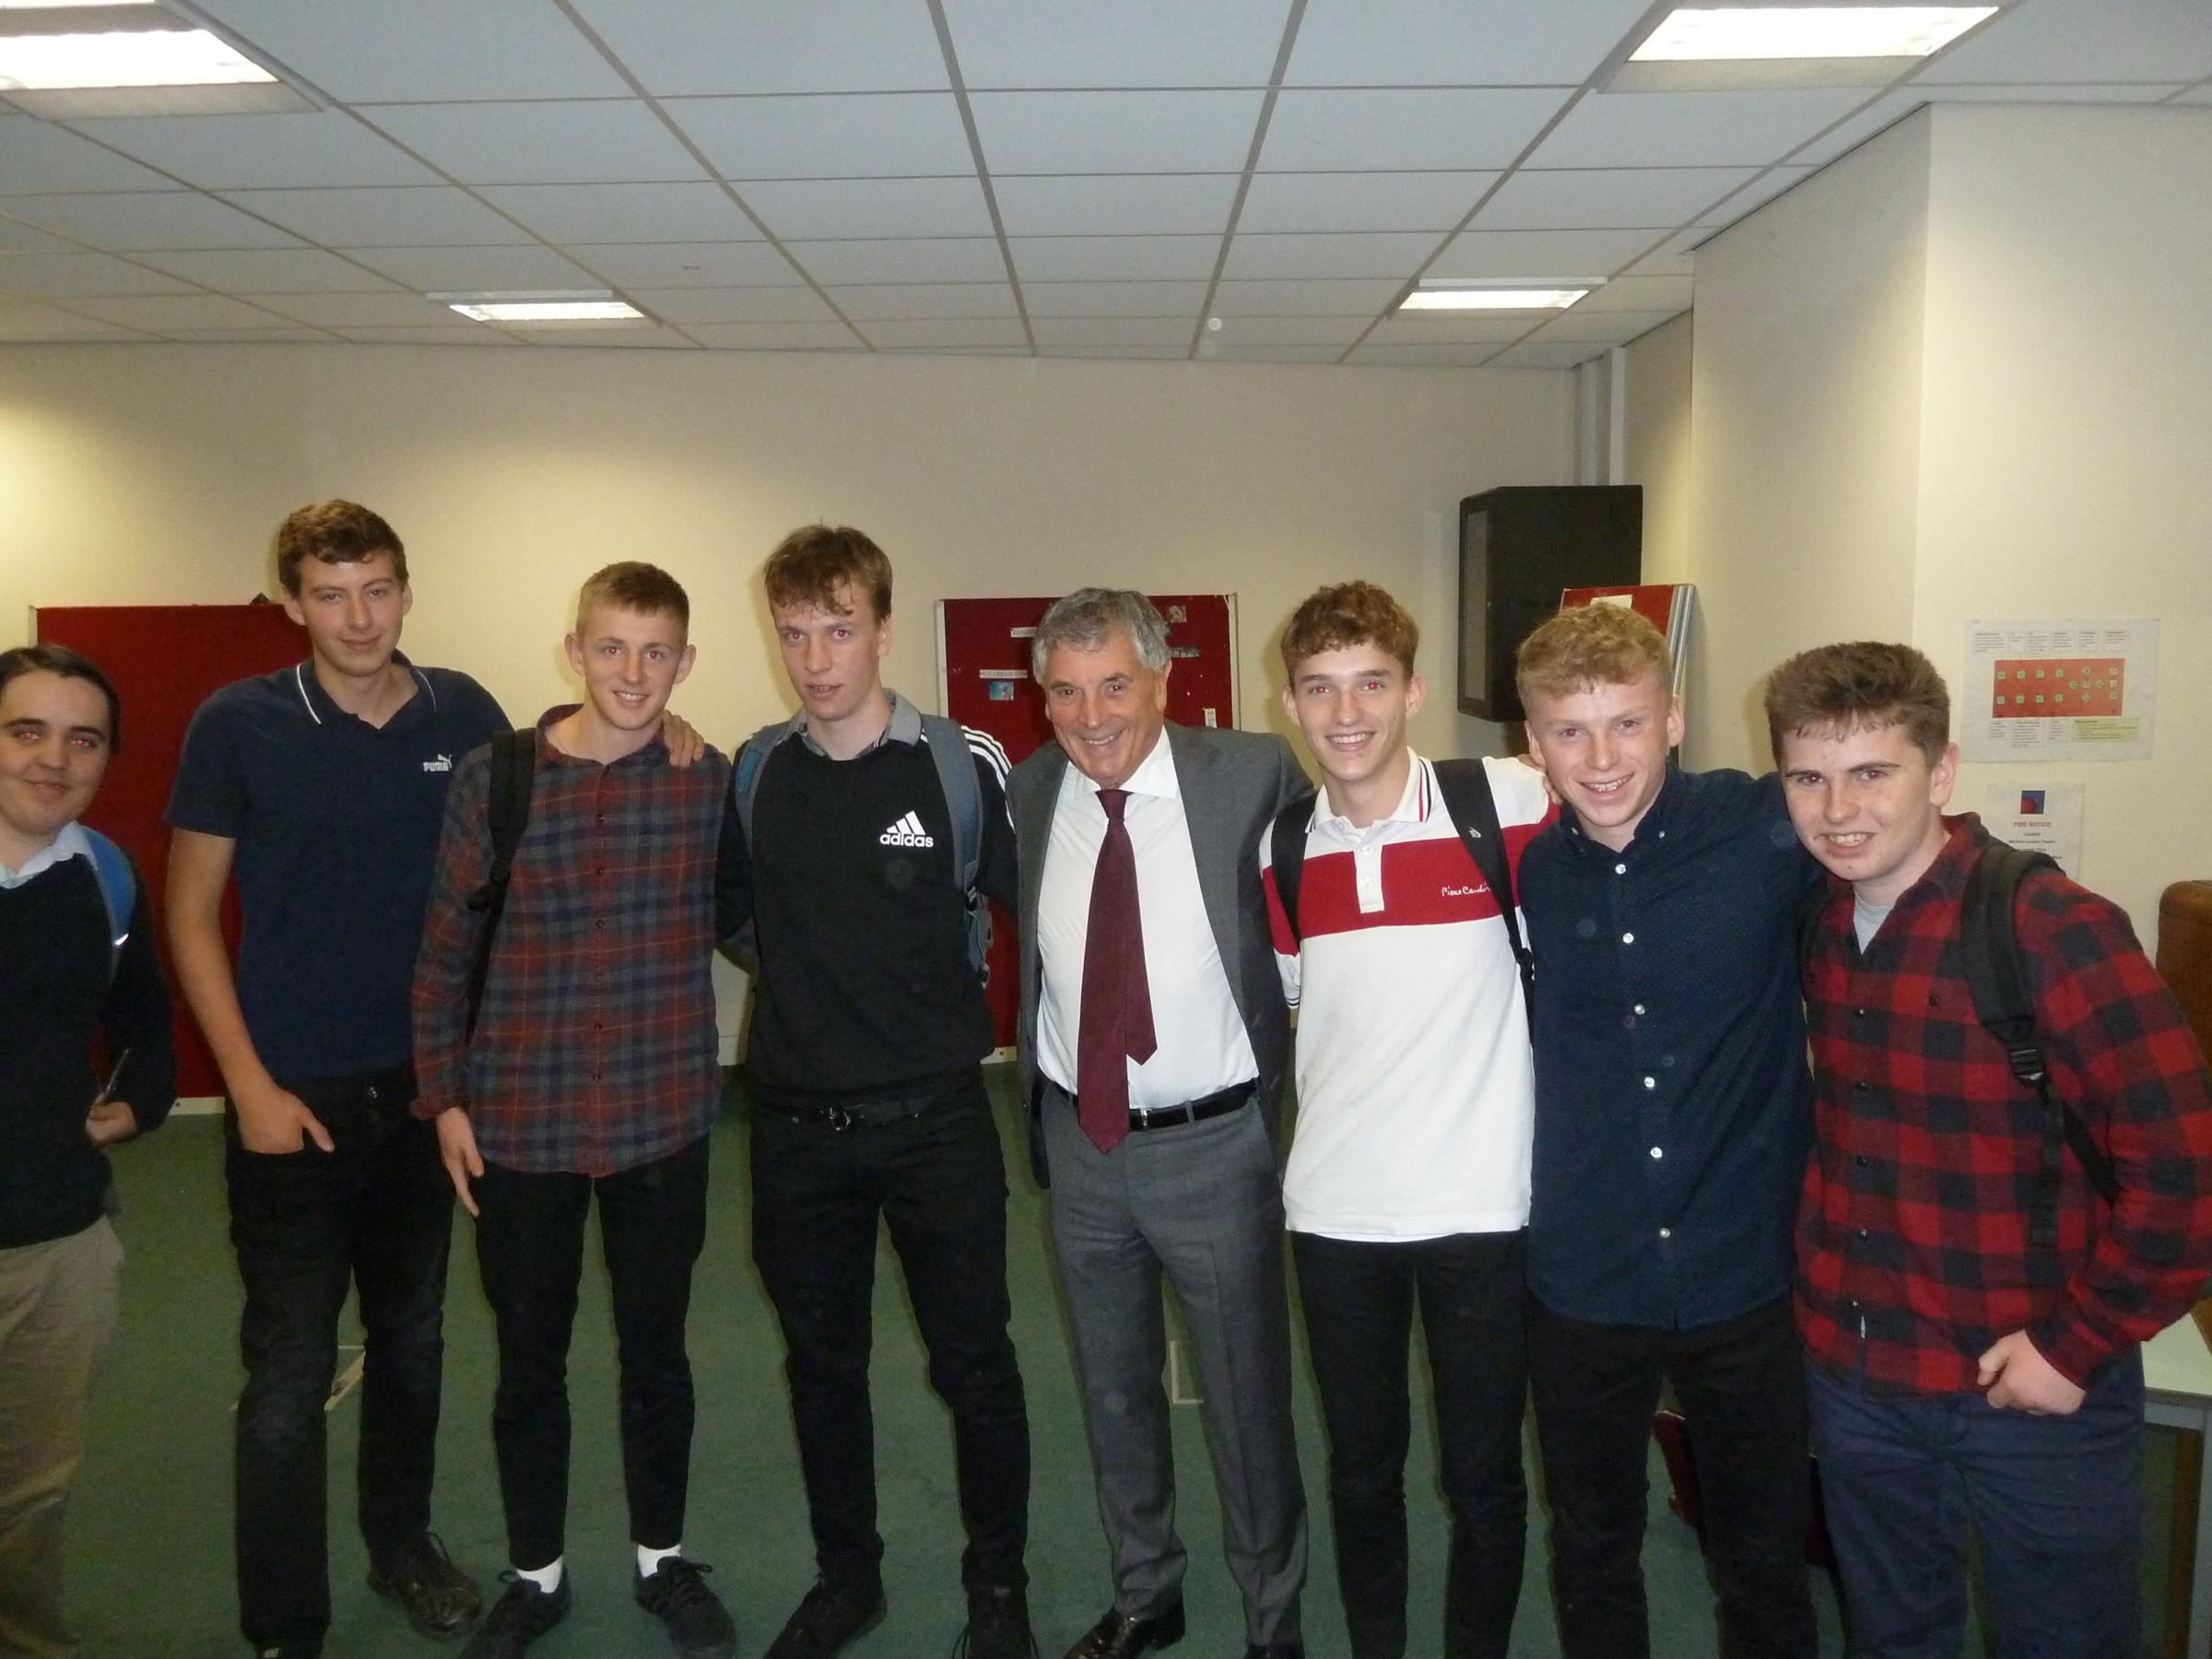 David Dein (centre) pictured with students